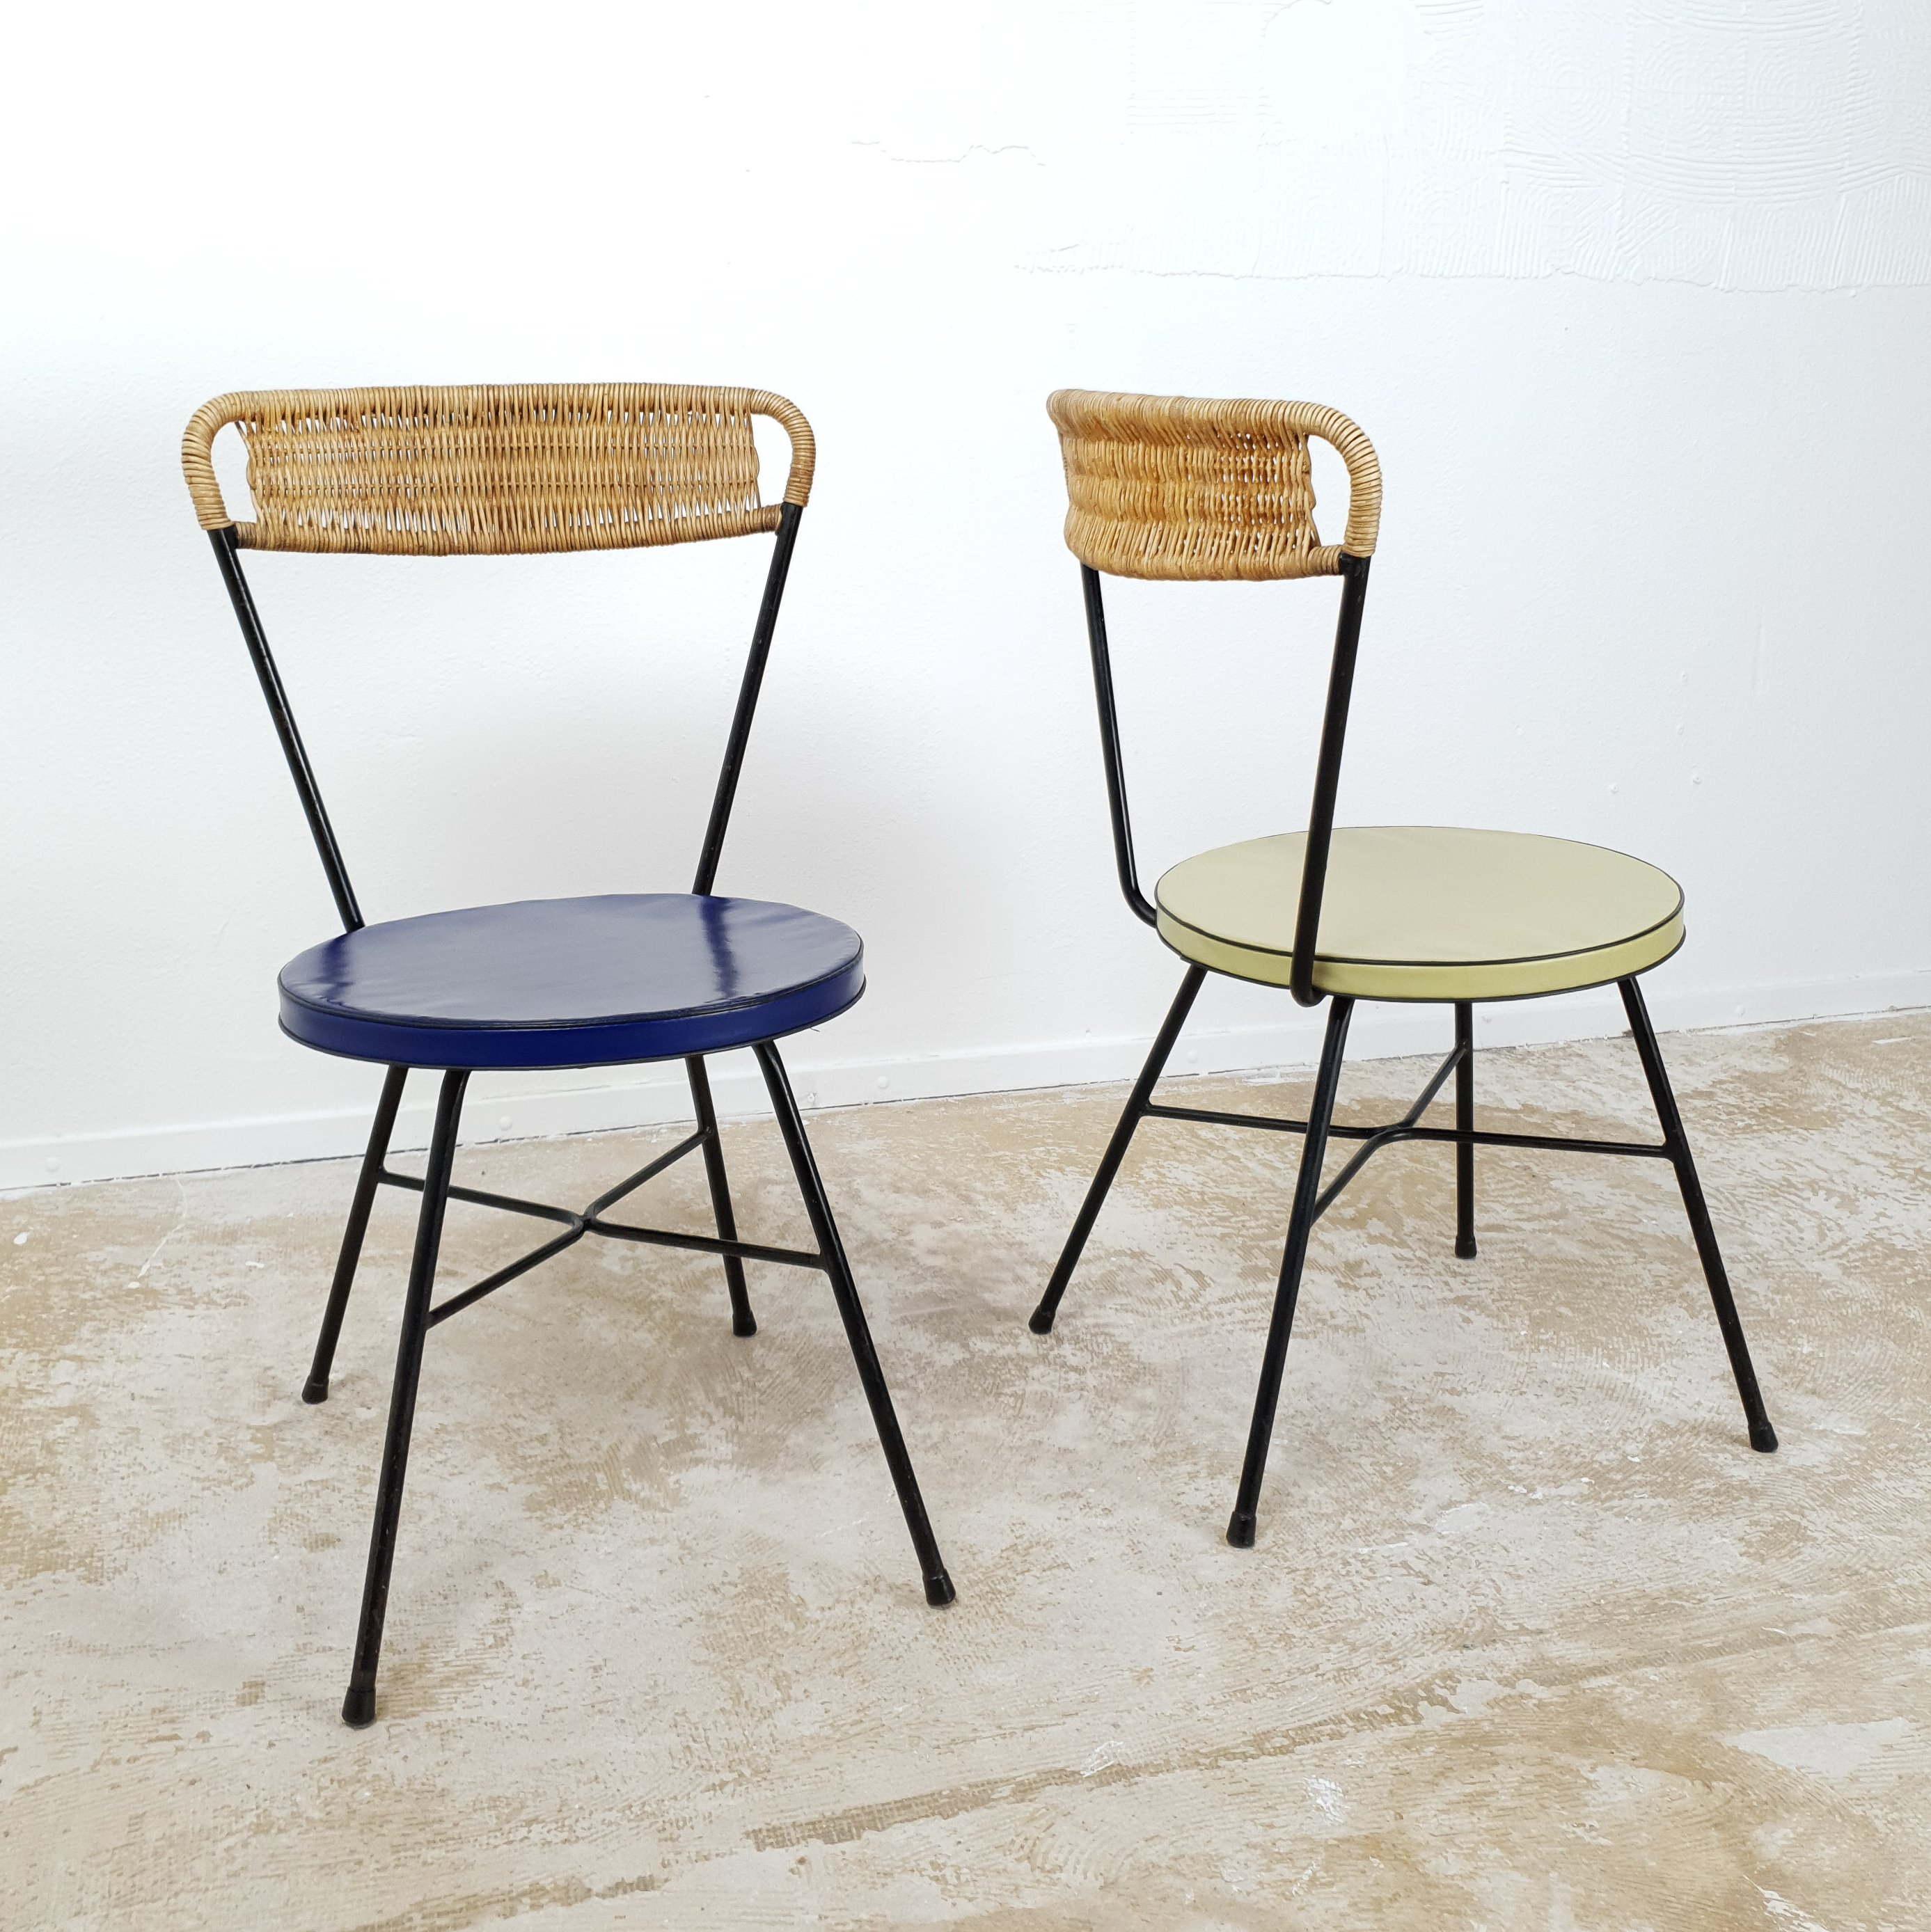 Picture of: Pair Of French Dining Or Side Chairs With Rattan Back Rest 1950s 115008